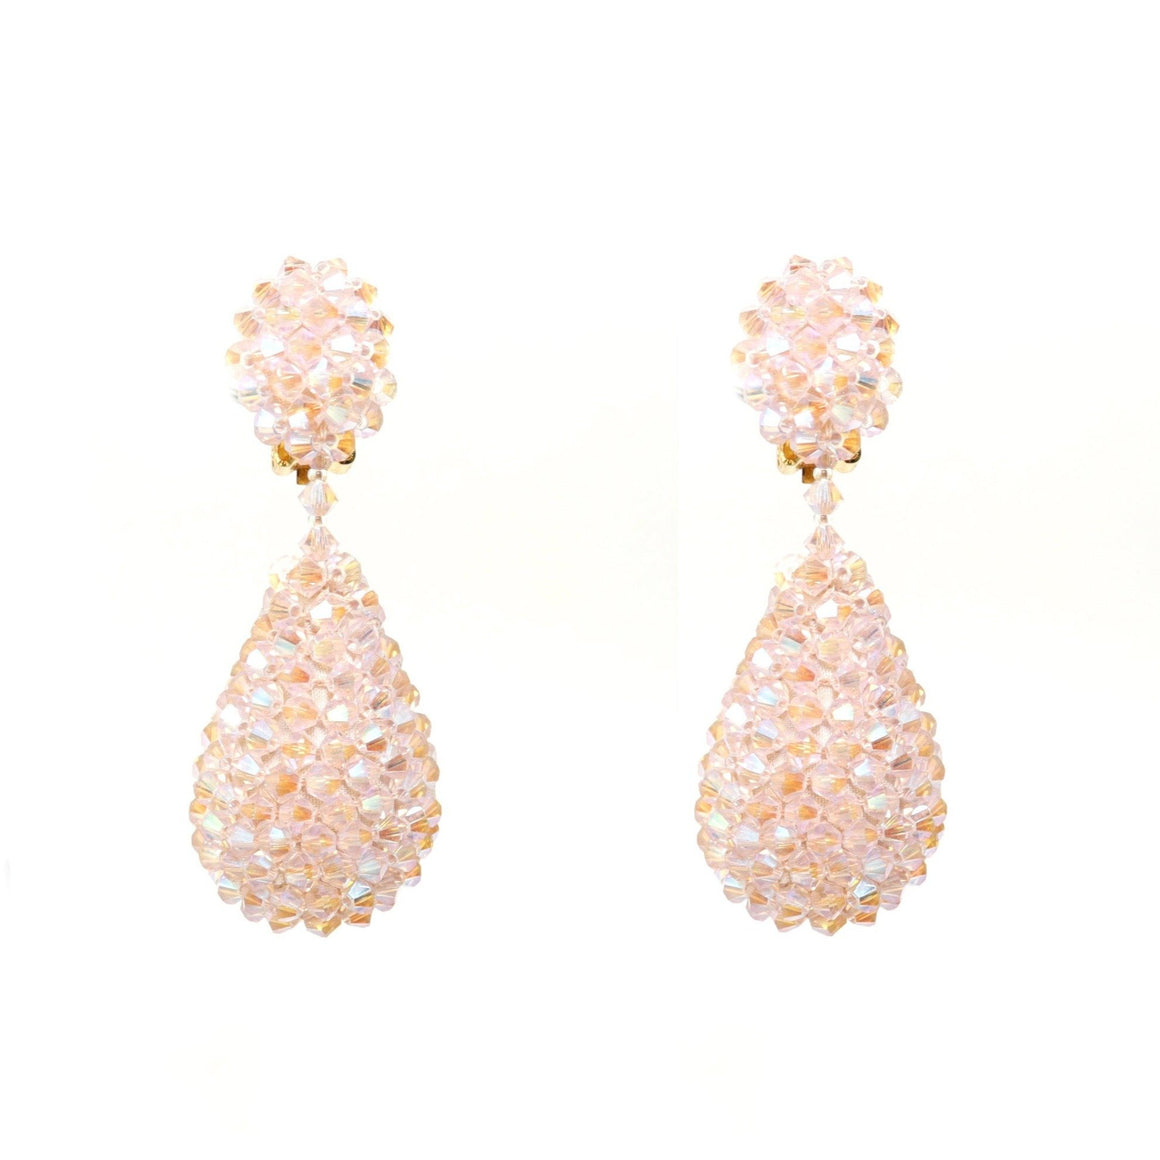 Alexis Drop Earrings - Frosty Pink